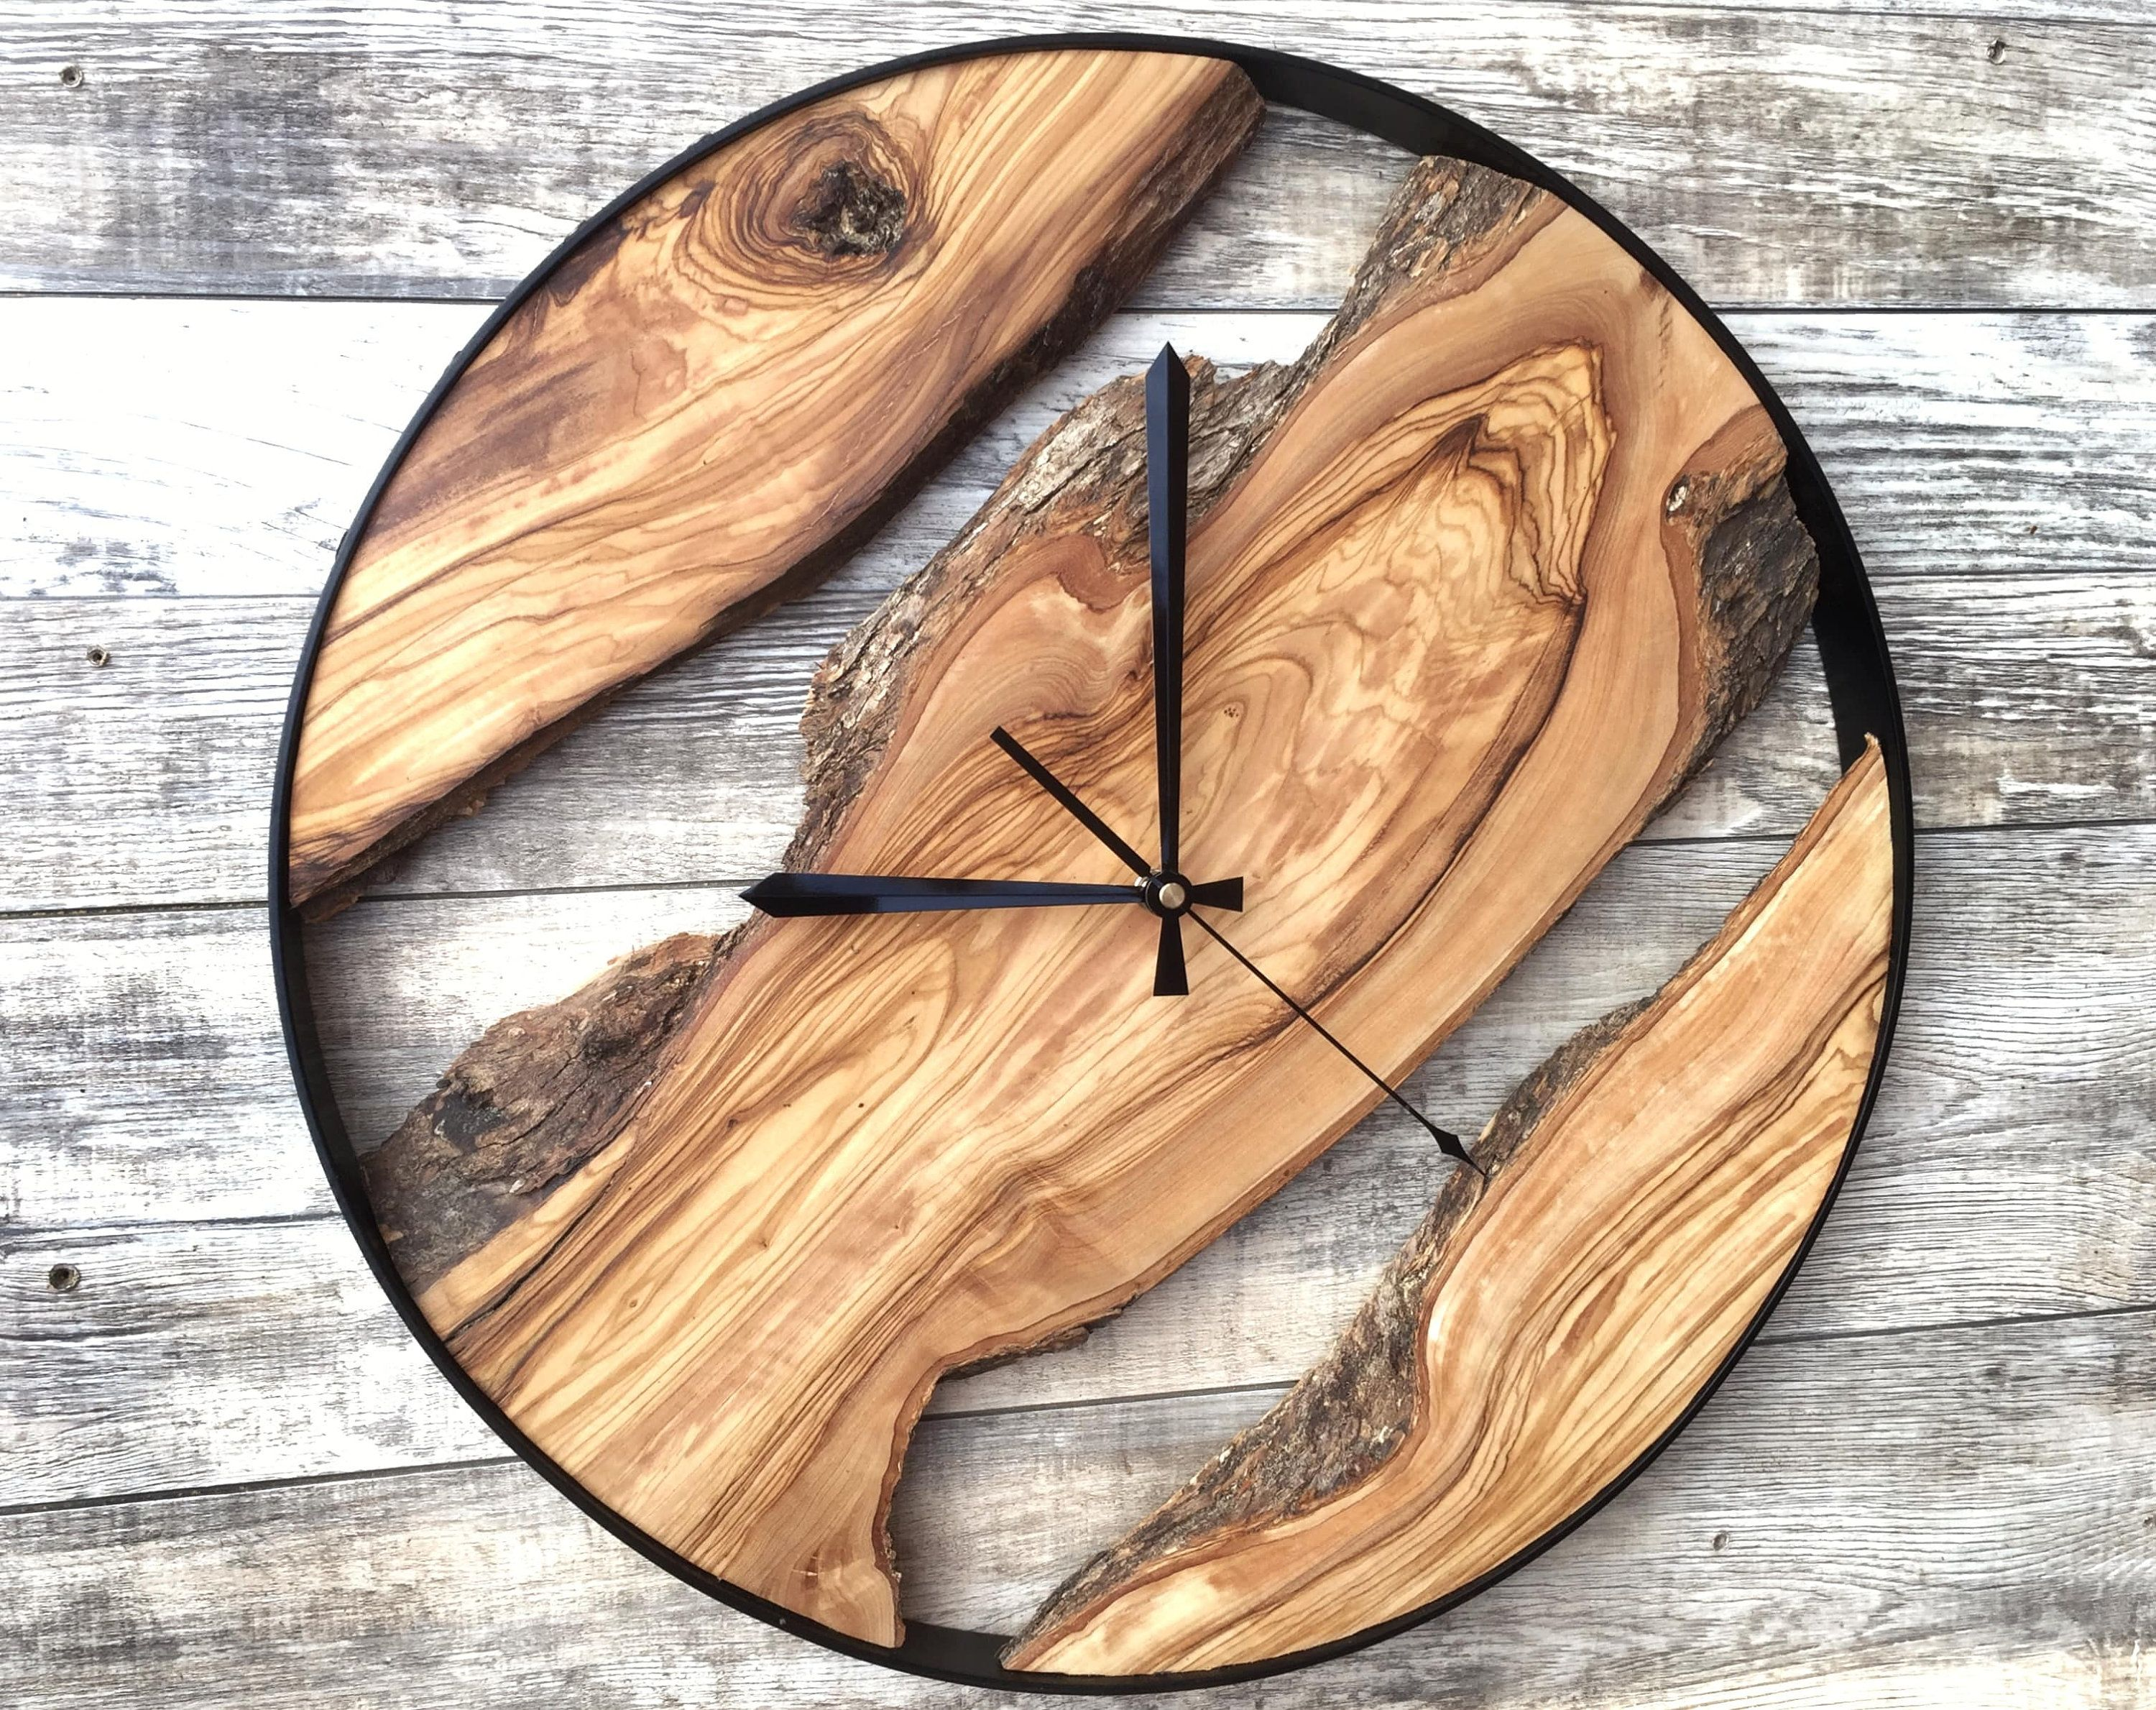 Clocks For Wall Wooden Wall Clock Wood Wall Clock Modern Wood Clock Large Clock Wall Unique Wall Clock Woo Rustic Wall Clocks Wood Wall Clock Wood Clocks